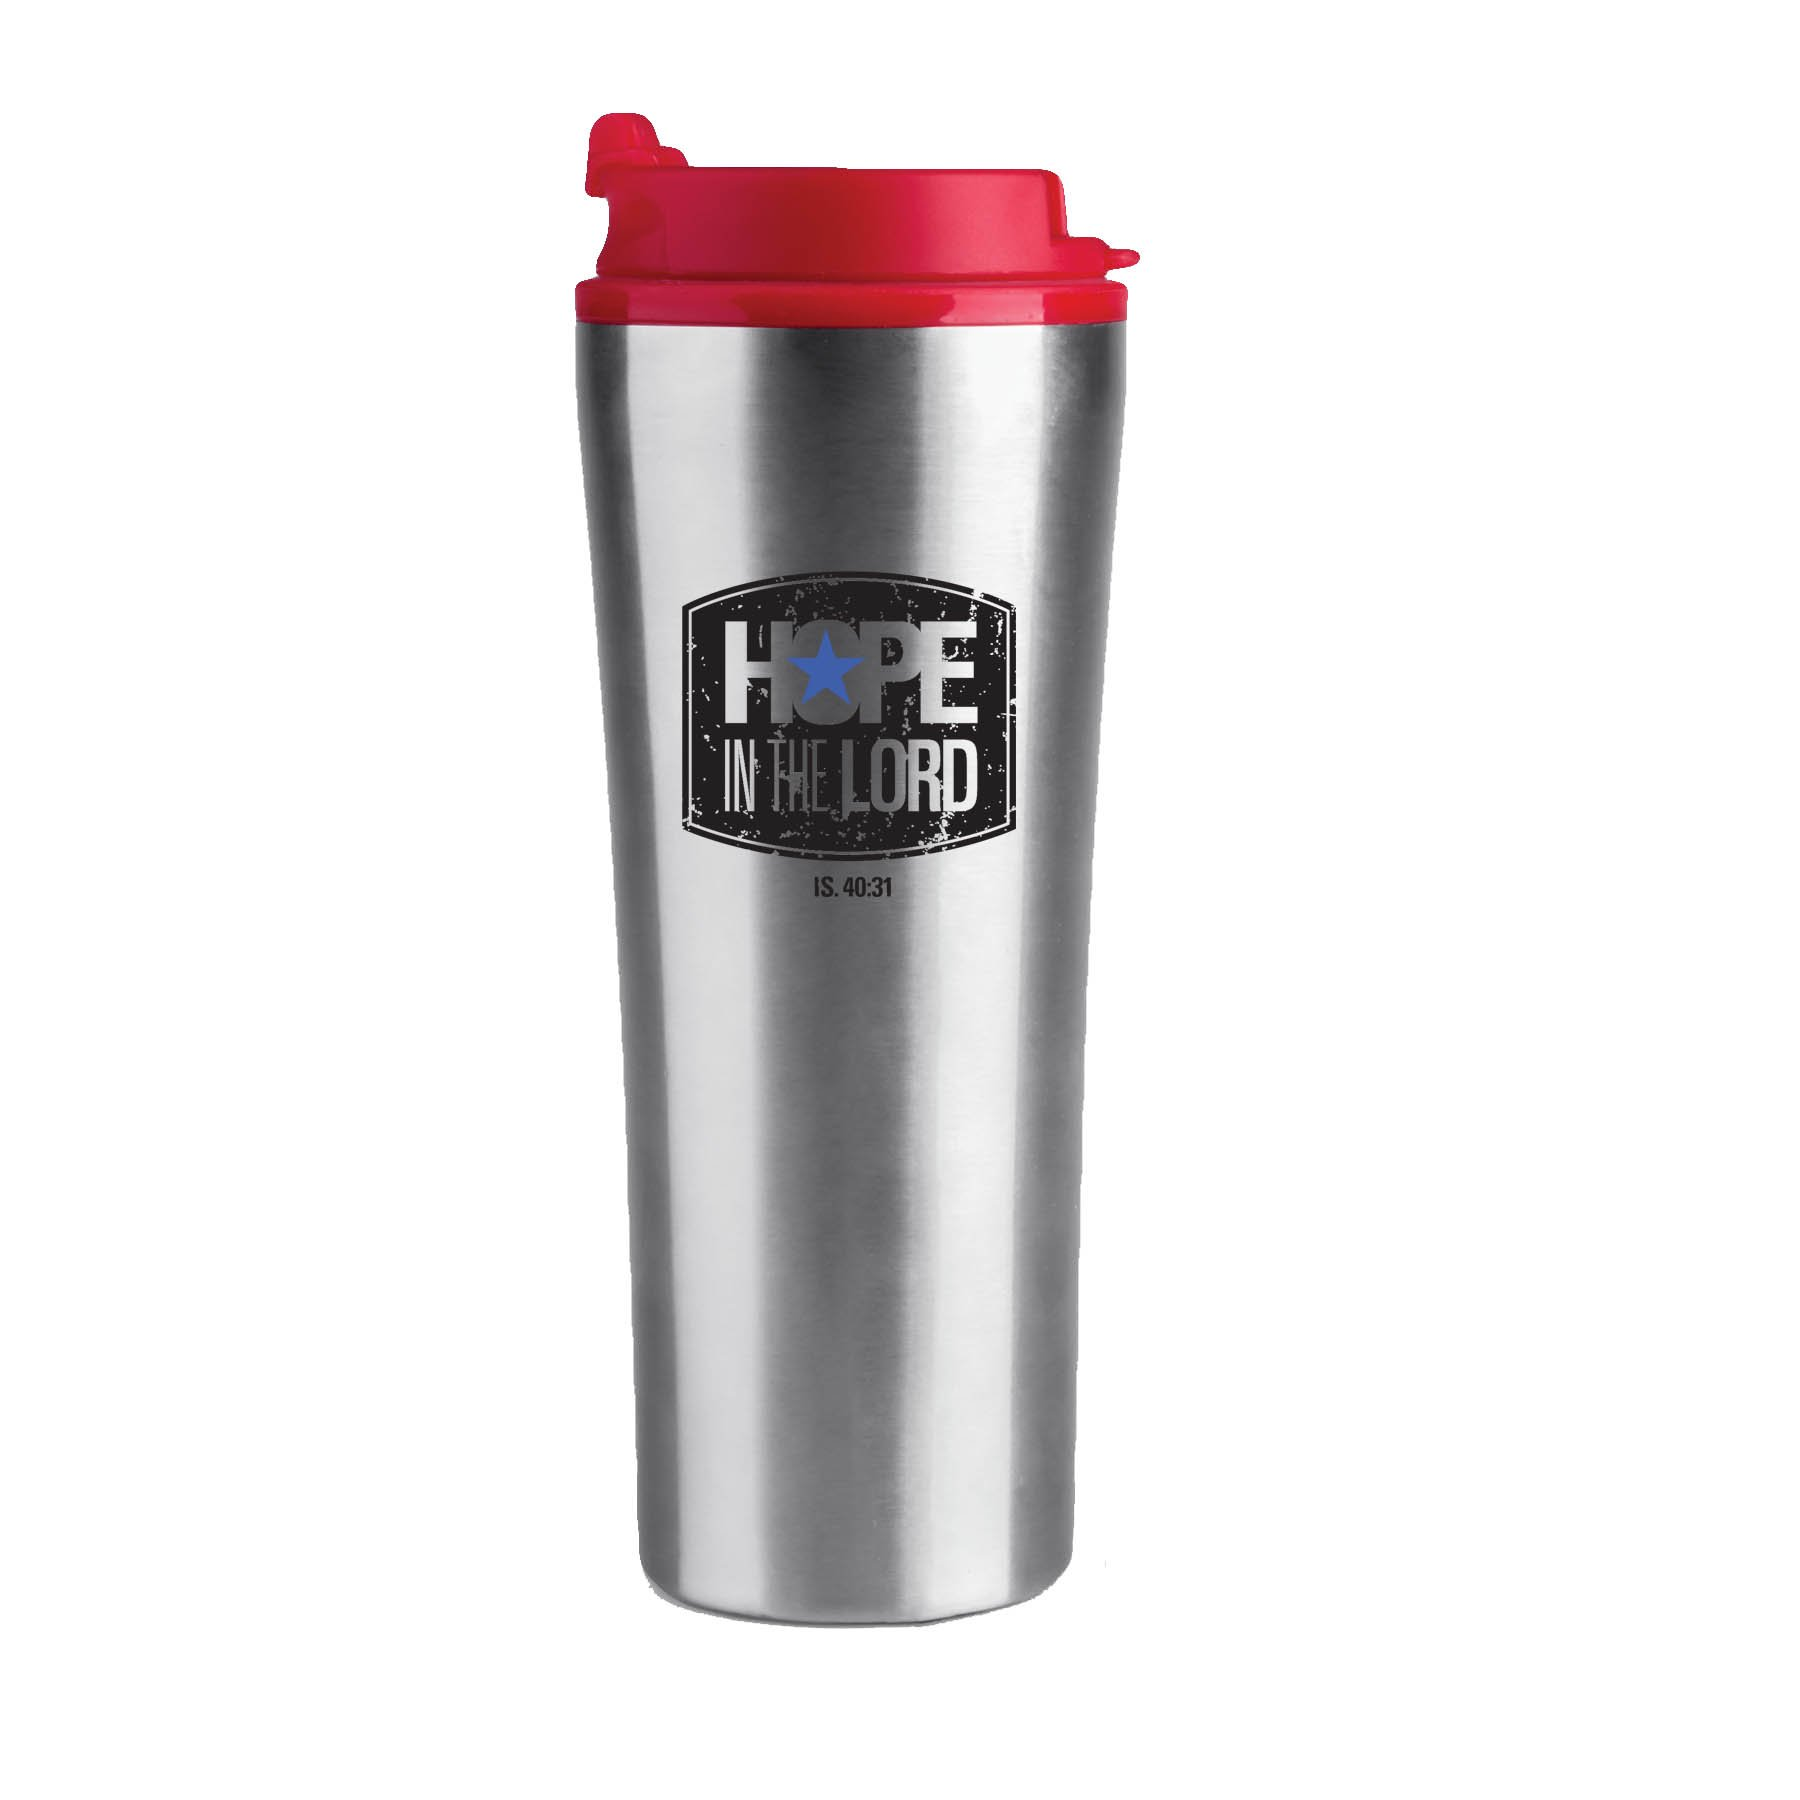 Lighthouse Christian Products He Guides Stainless Steel Tumbler Mug, 16 oz